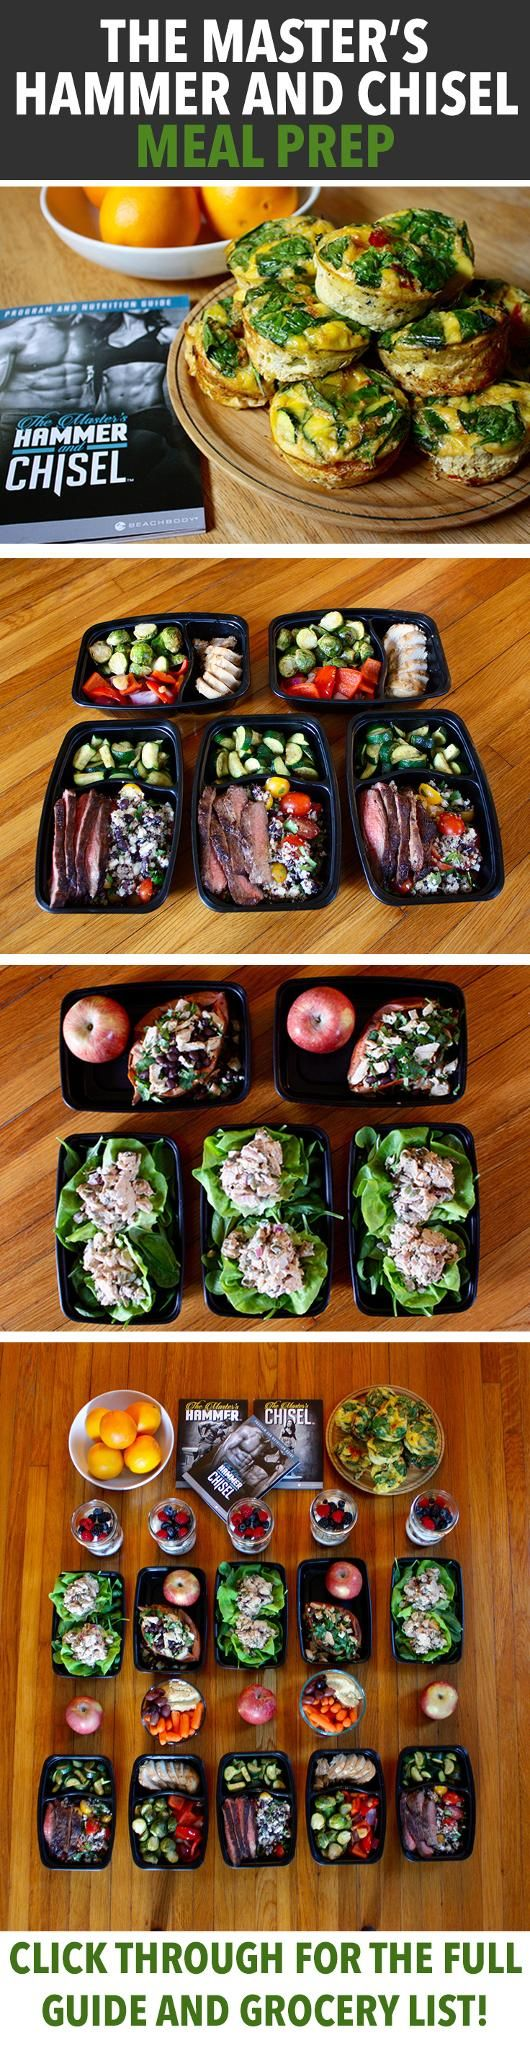 Plastic containers for weekly meal prep!  How to Meal Prep for The Master's Hammer and Chisel - Click through for the full grocery list and prep plan to help you fuel your body and get the best